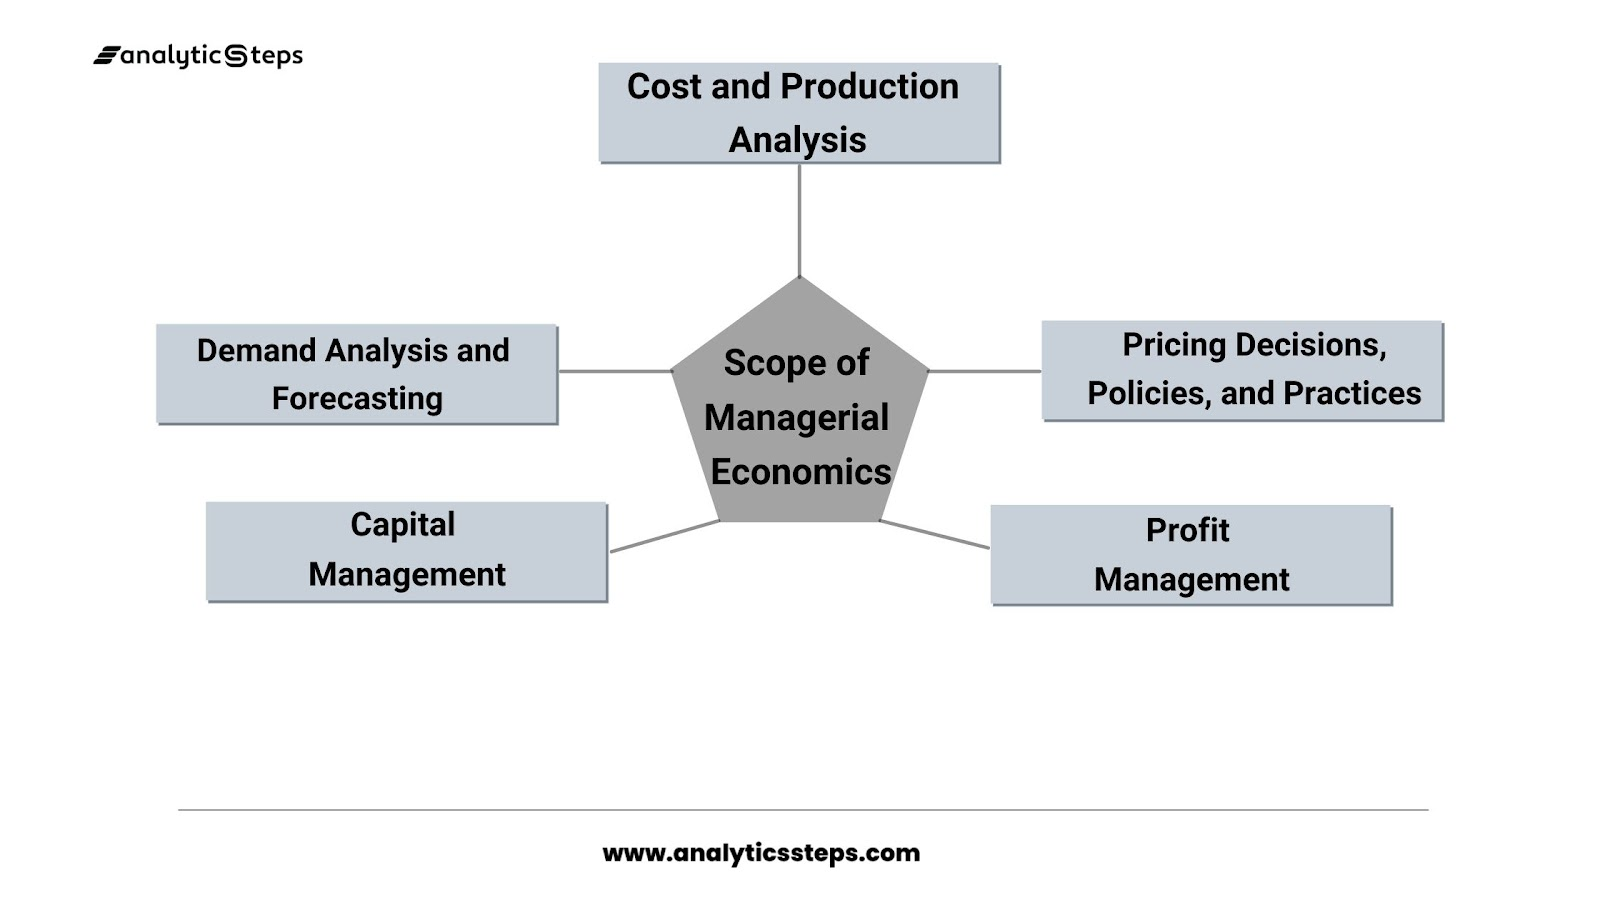 The image shows the scope of managerial economics that are demand analysis and forecasting; cost and production analysis; Pricing decisions, policies, and practices; profit management; and capital management.